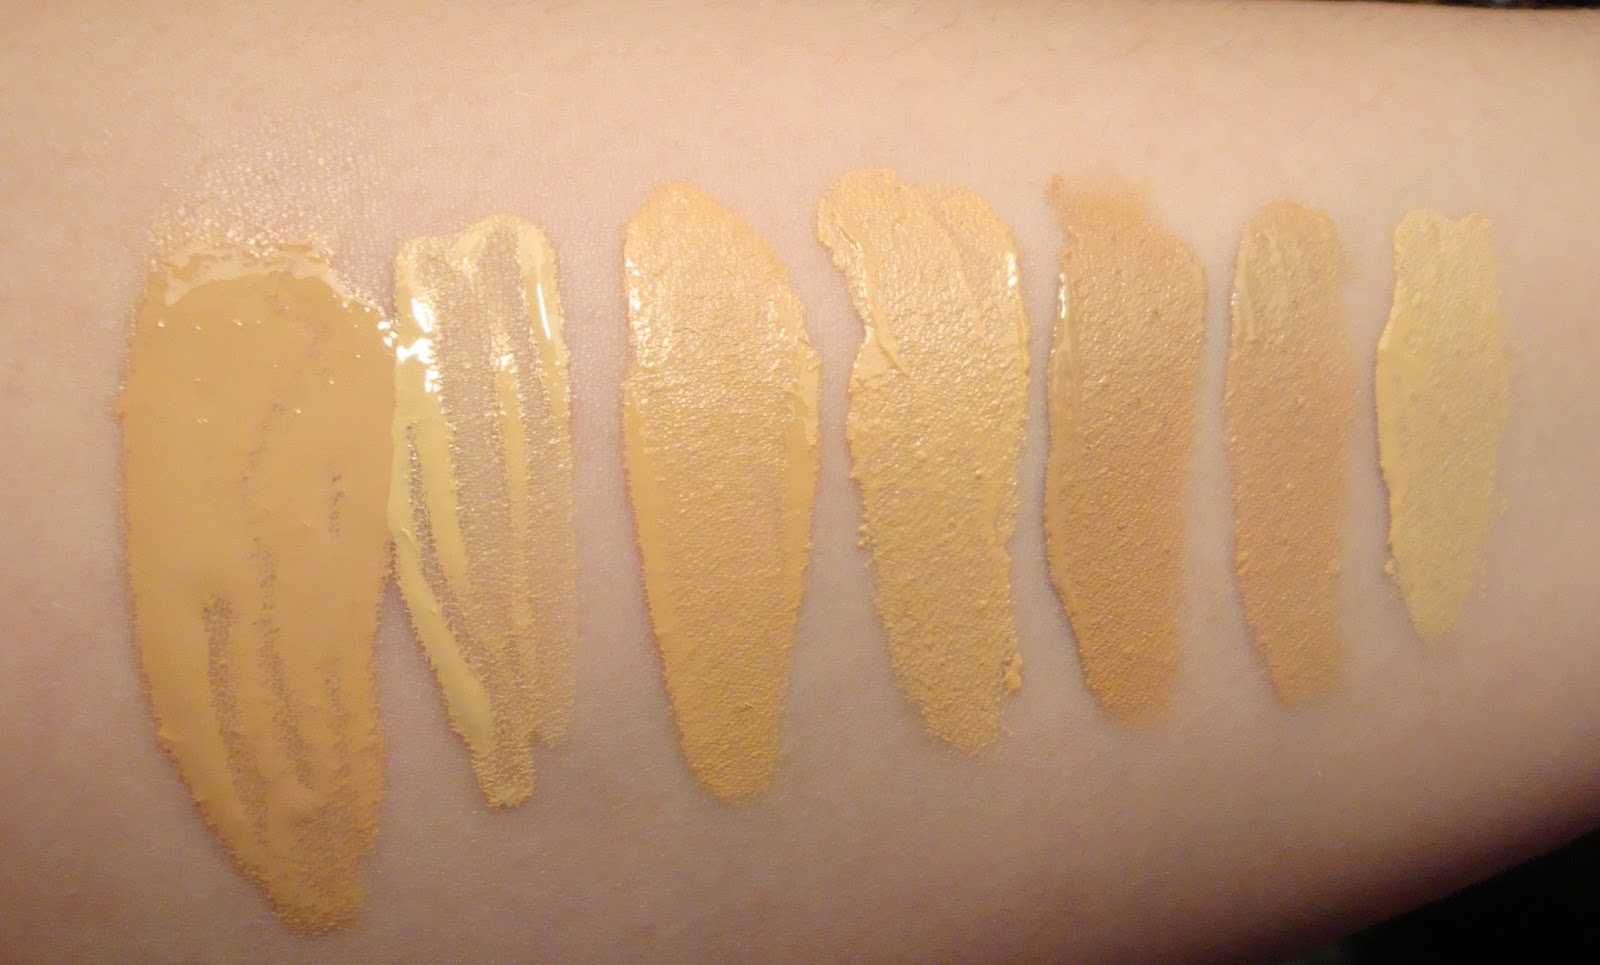 Renergie Lift Antiwrinkle Lifting Foundation by Lancôme #7